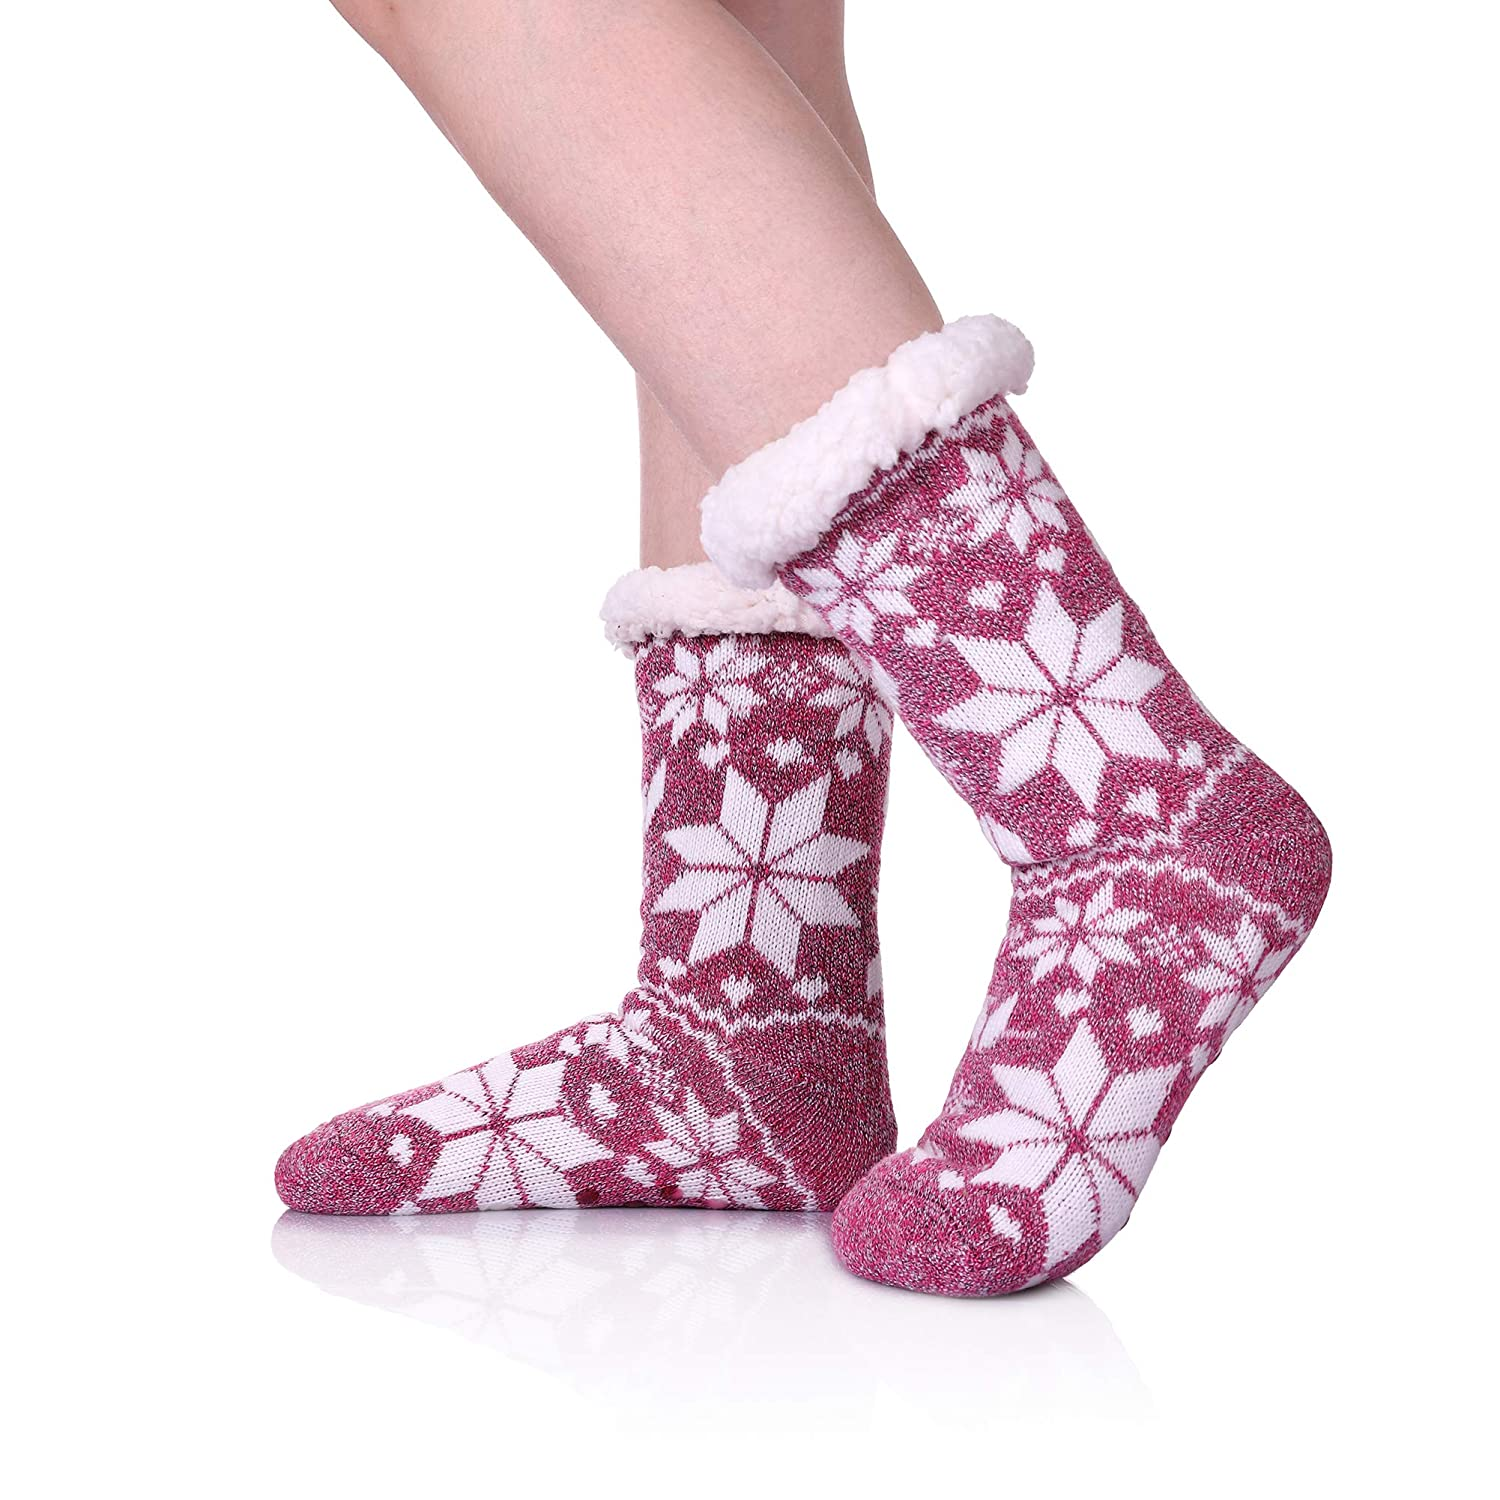 edbff2391ada9 Womens Winter Fleece Lining Knit Christmas Non Slip Knee Highs Stockings  Warm Fuzzy Cozy Slipper Socks